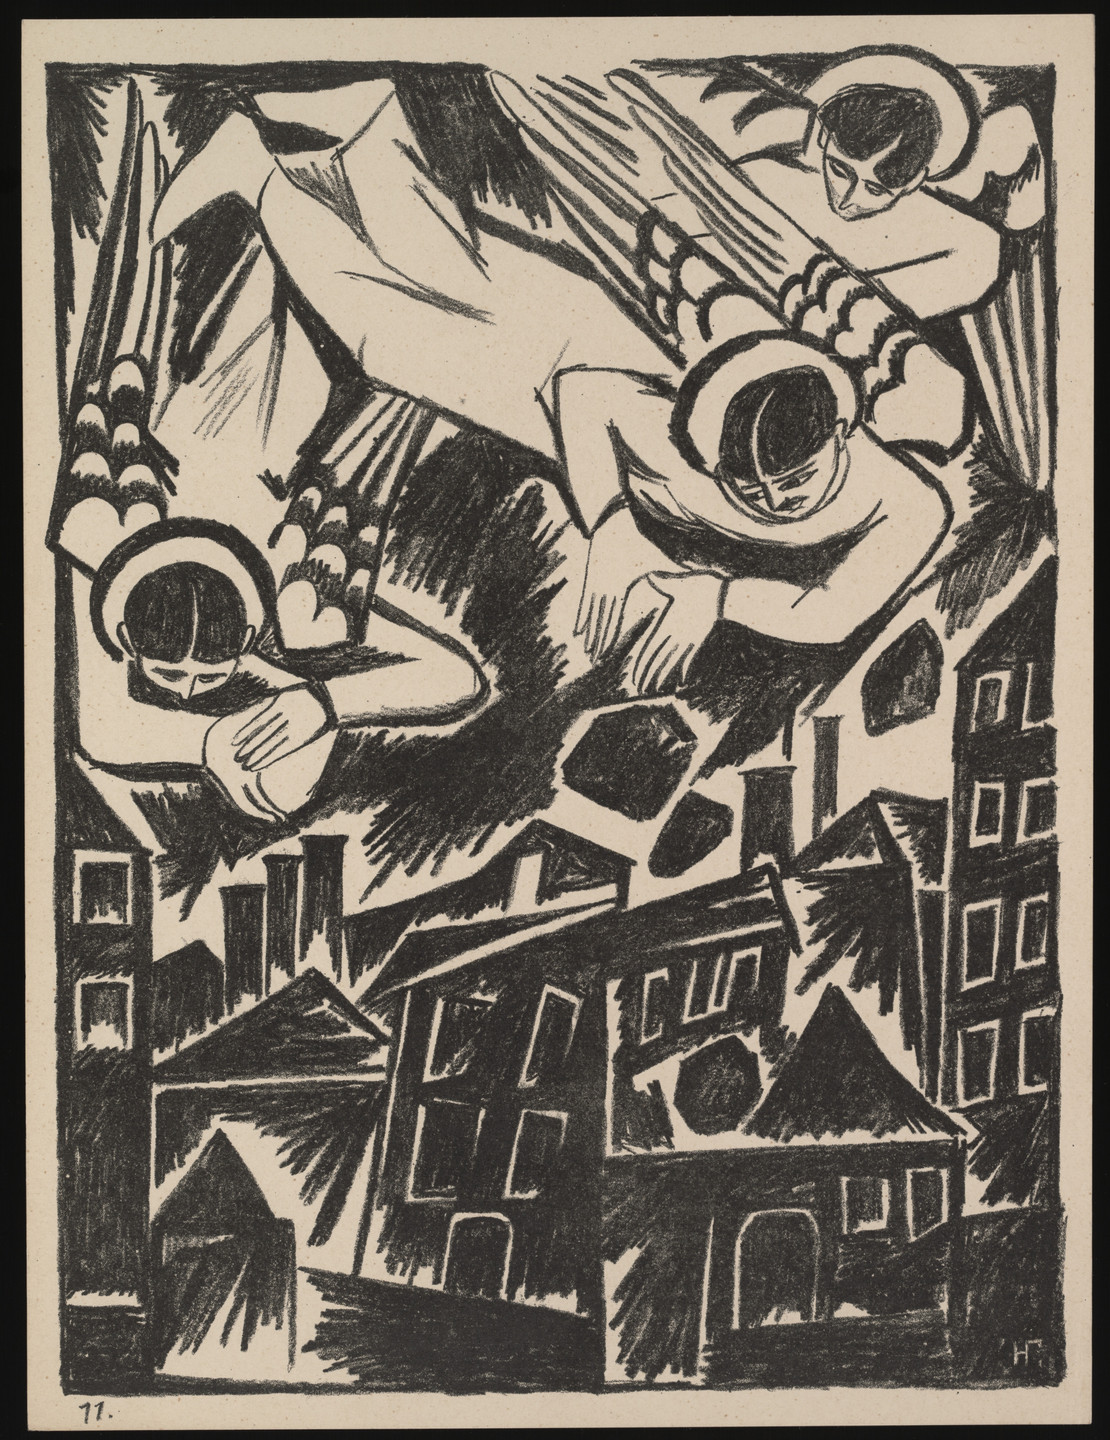 Natalia Goncharova. Grad obrechennyi (The Doomed City) from Misticheskie obrazy voiny. 14 litografii (Mystical Images of War: Fourteen Lithographs). 1914